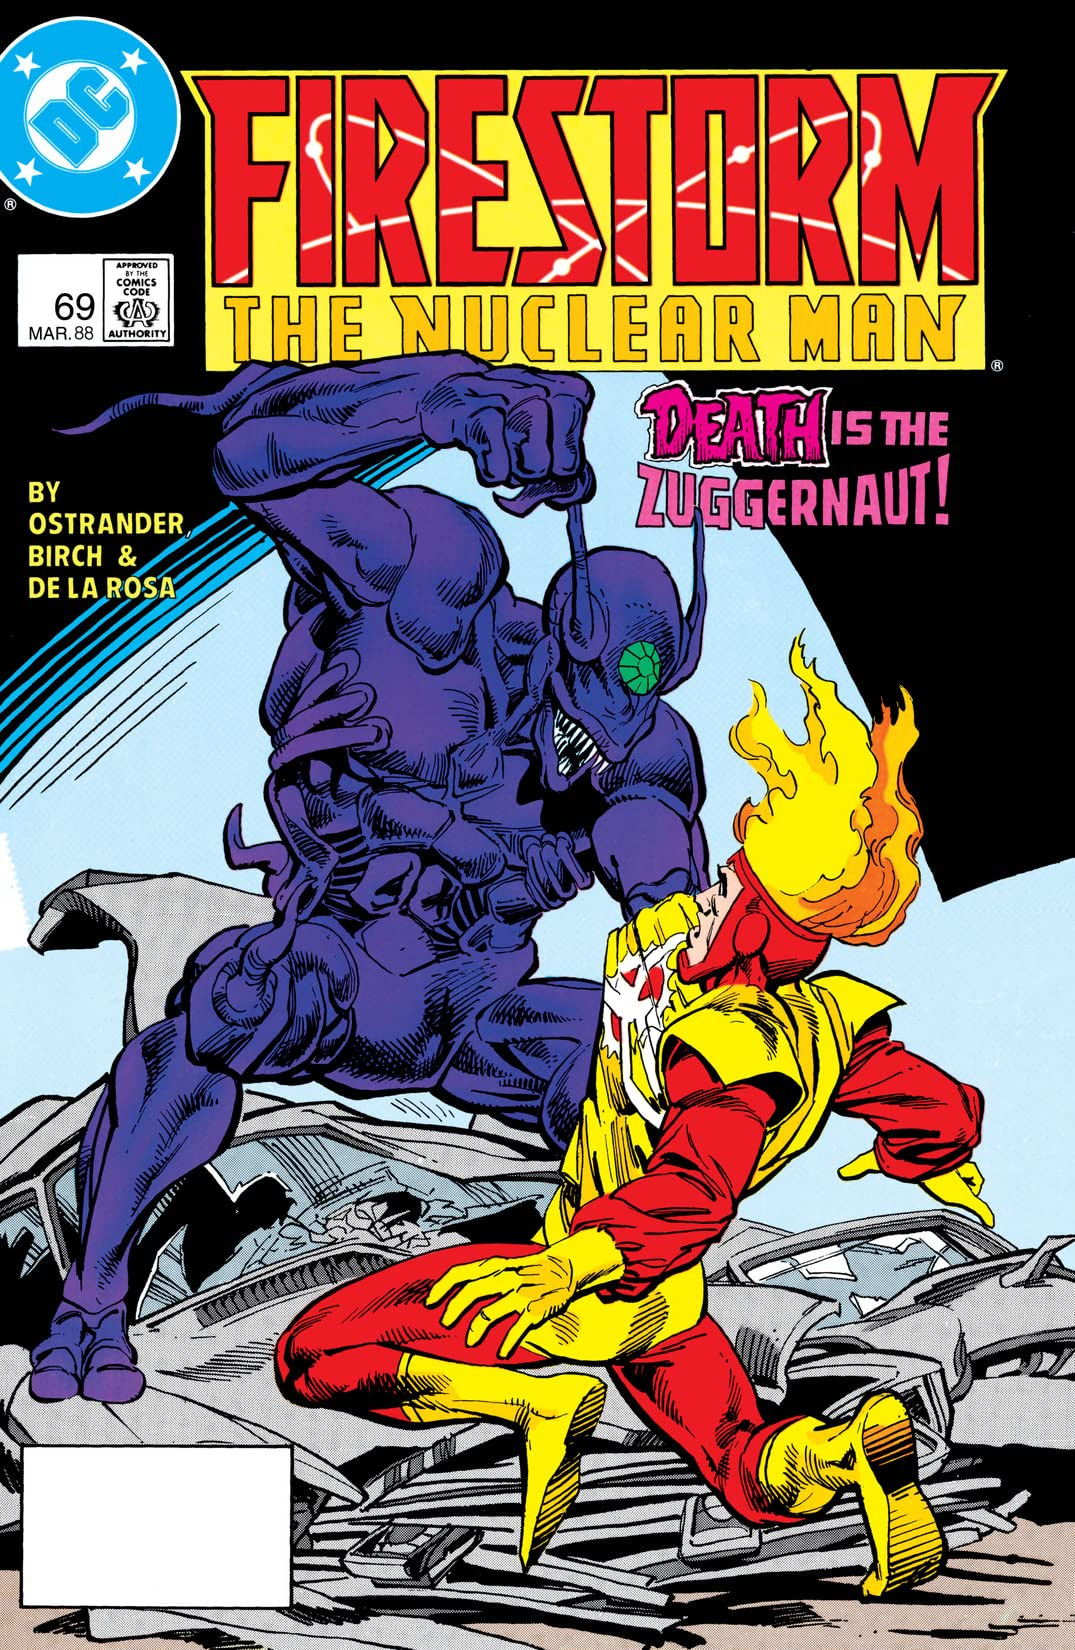 Firestorm: The Nuclear Man (1982-1990) #69